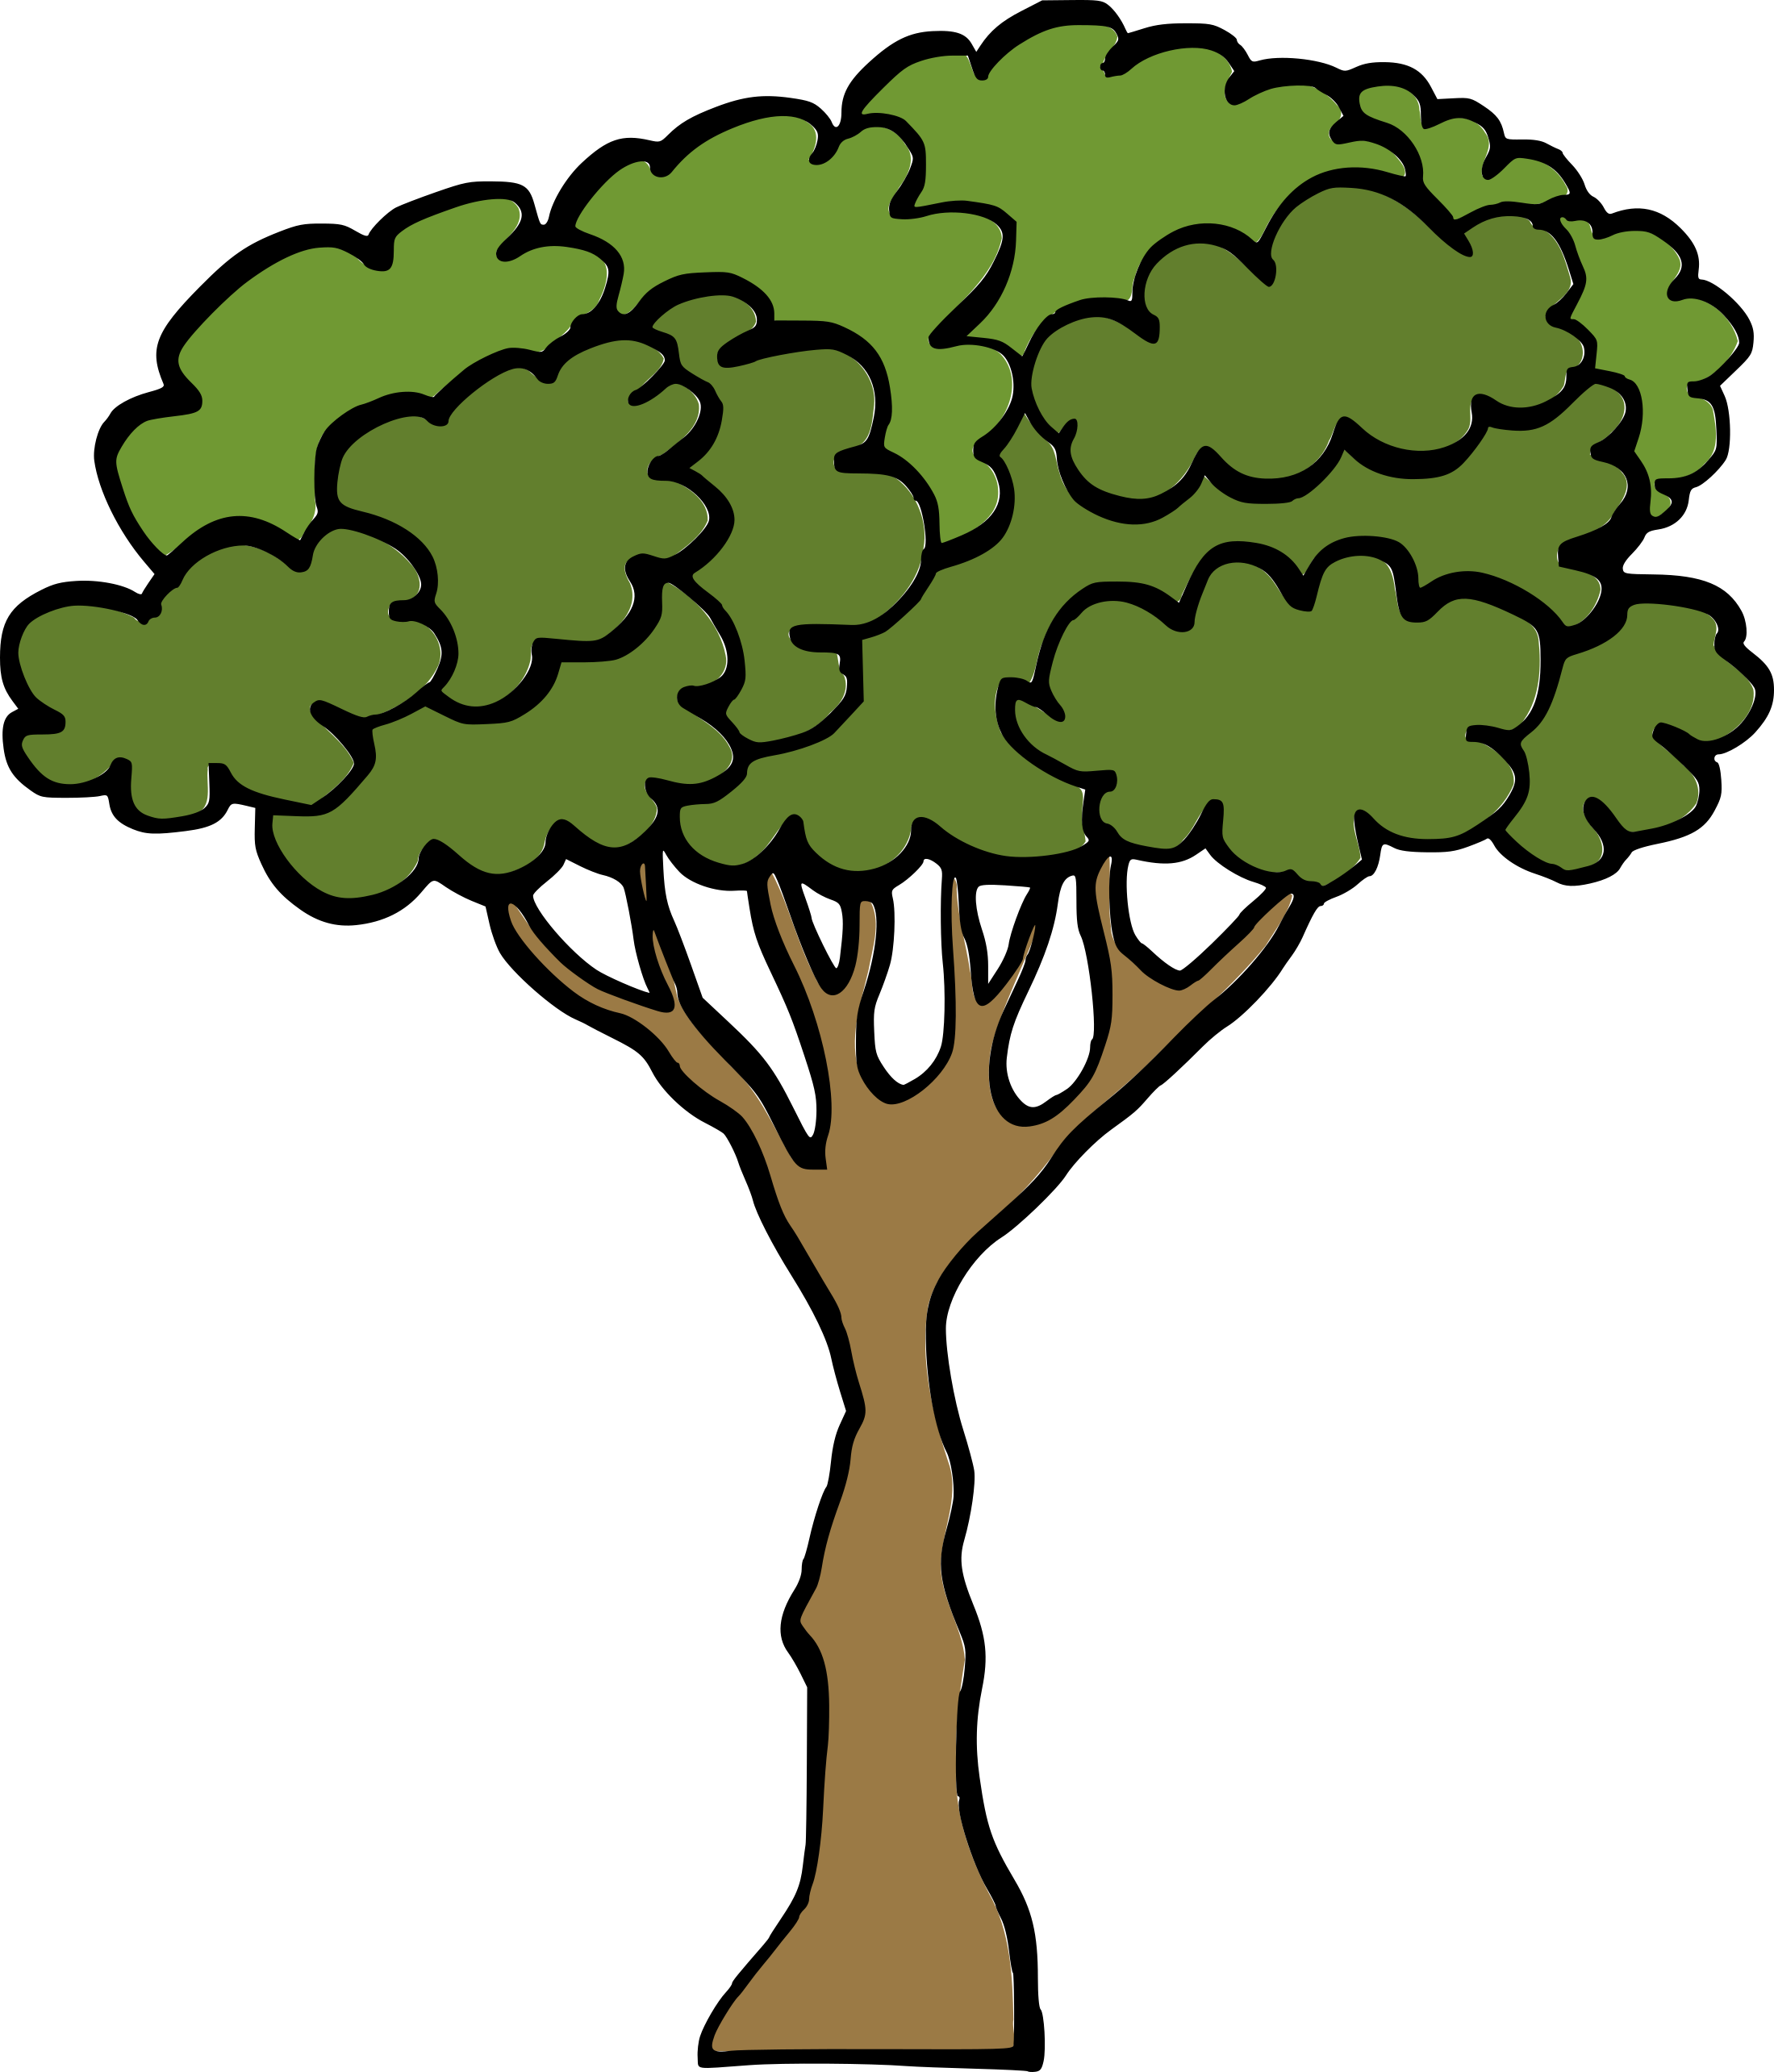 cartoon-tree-3.png